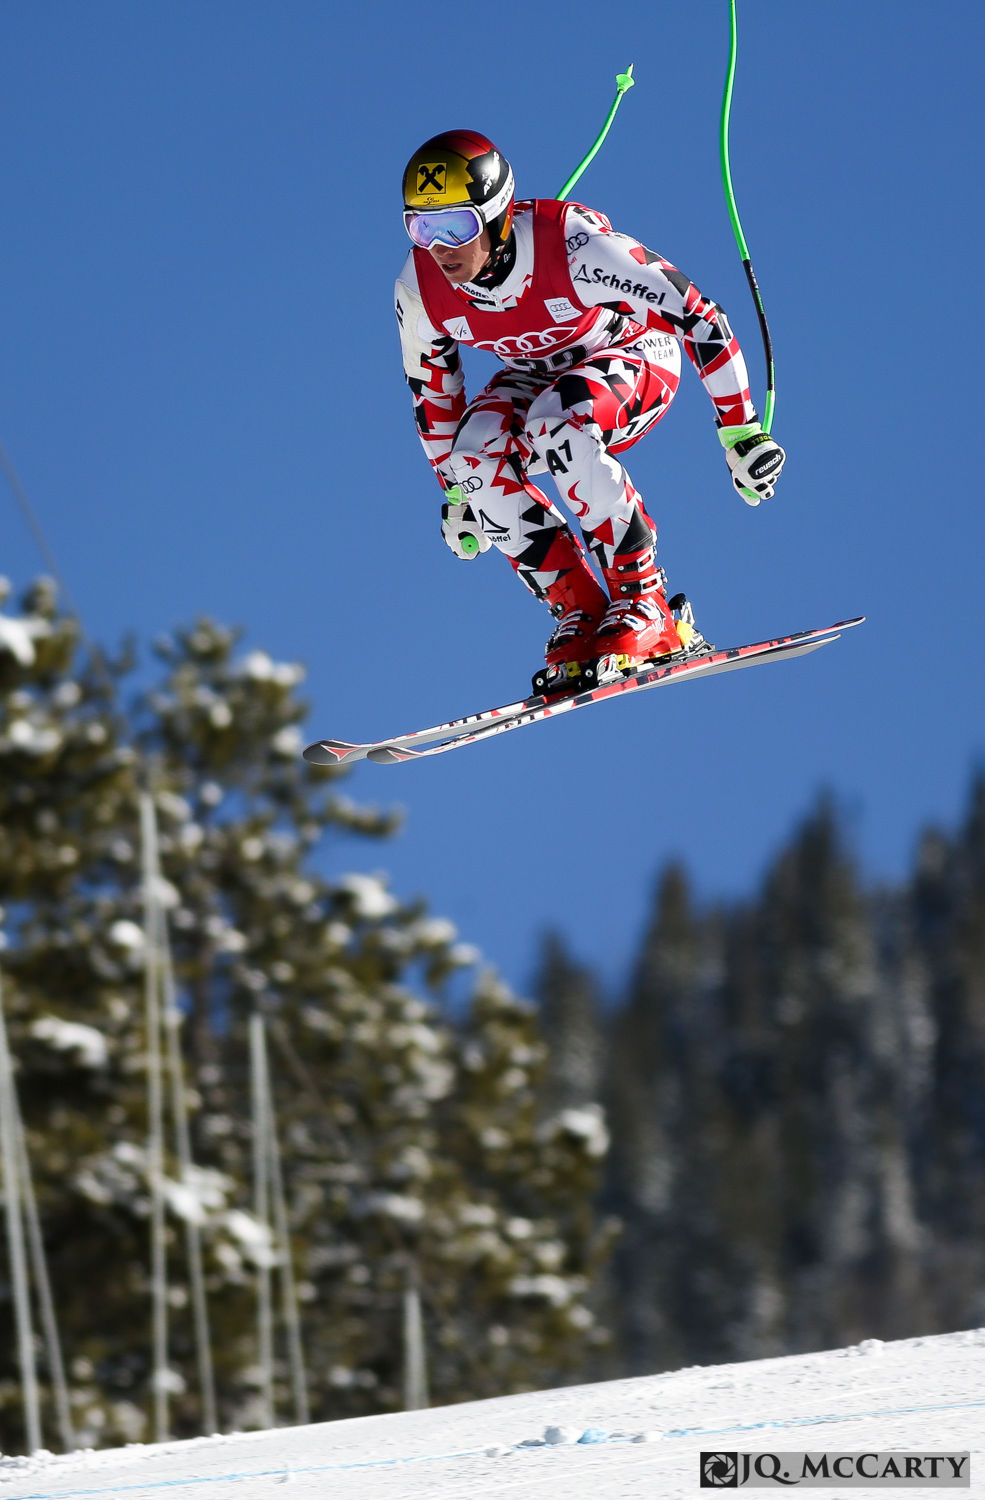 Austria's Marcel Hirscher catches some air after launching off the Red Tail jump during the first day of training for the Birds of Prey downhill race Wednesday in Beaver Creek.